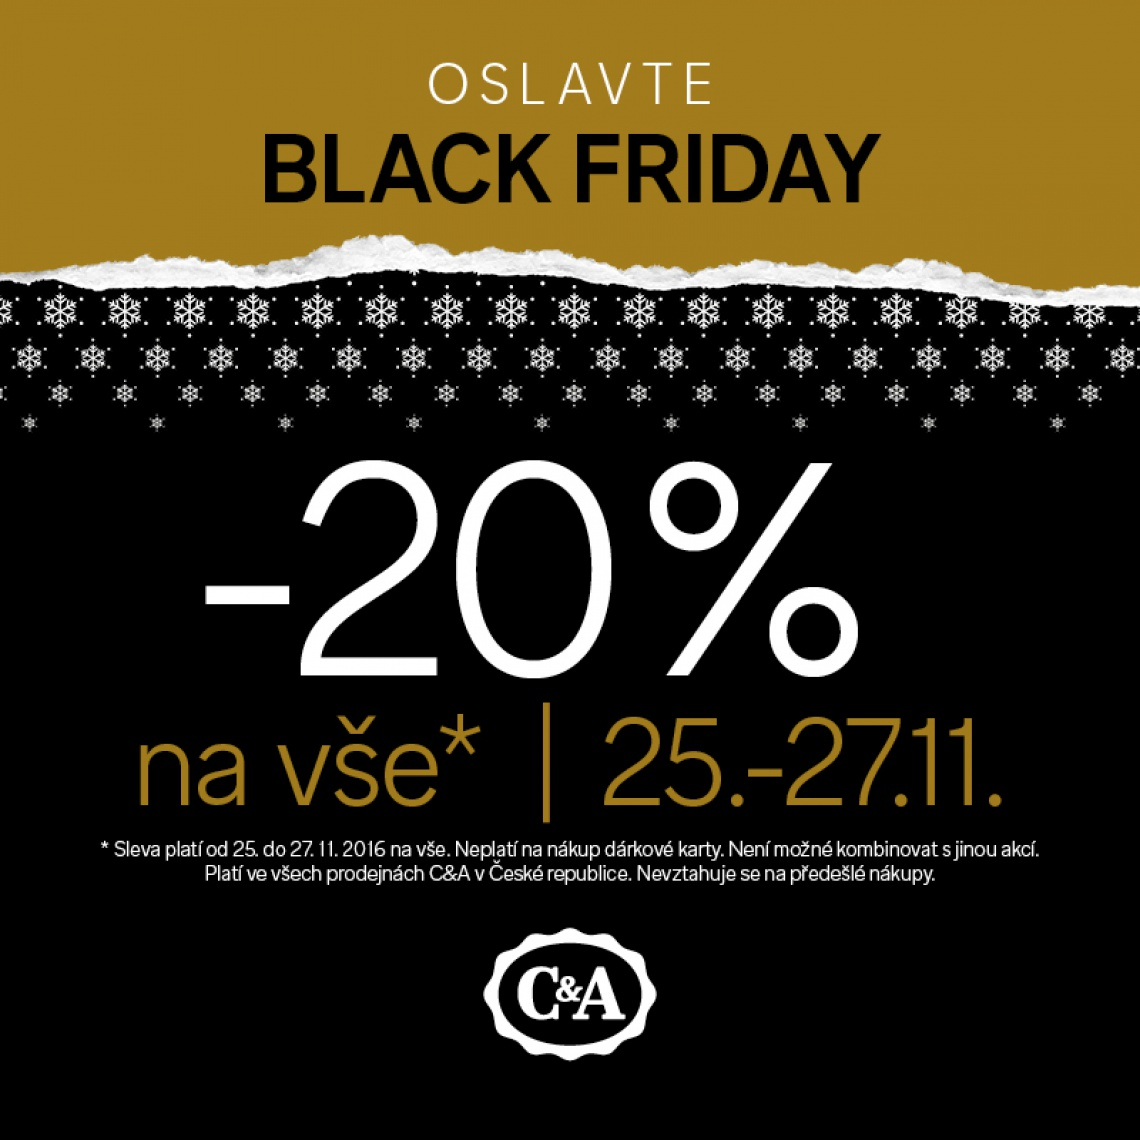 Oslavte Black Friday